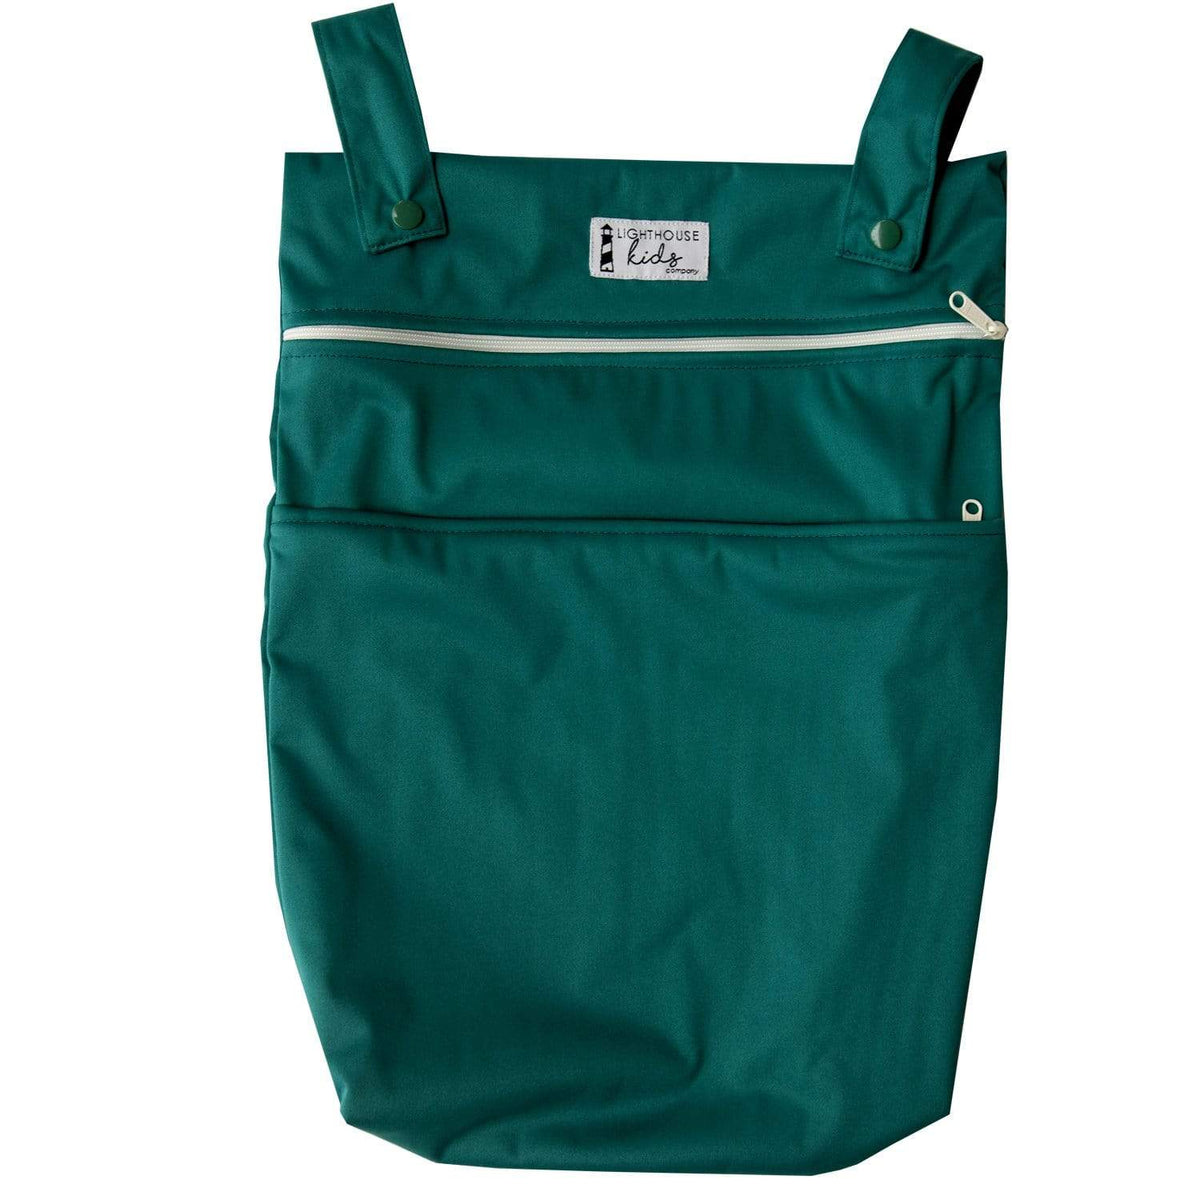 Lighthouse Kid's Company Medium Wet Bag - Evergreen